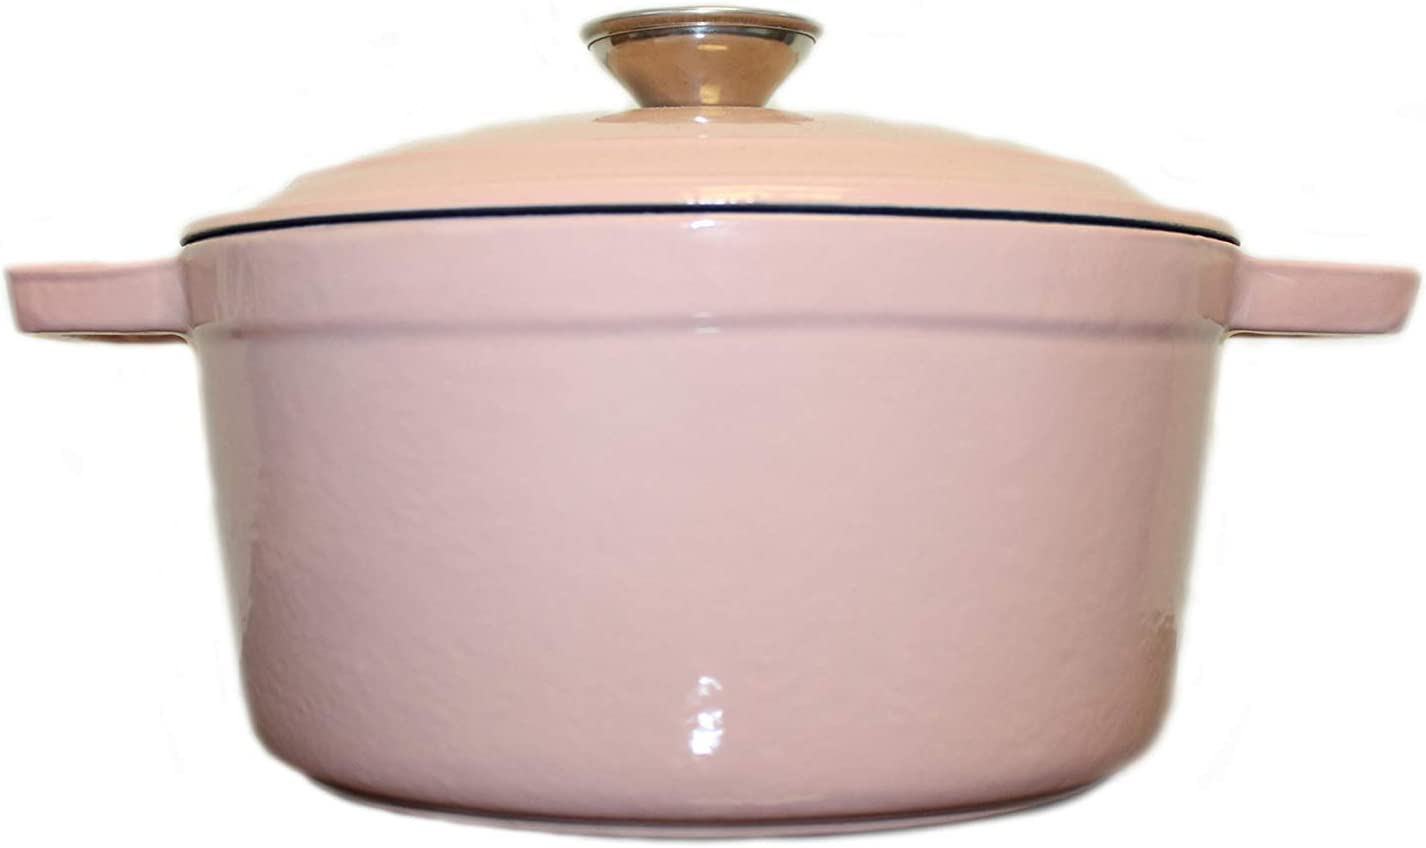 Berghoff Neo 8qt Cast Iron Oval Covered Casserole Dish Pink Kitchen Dining